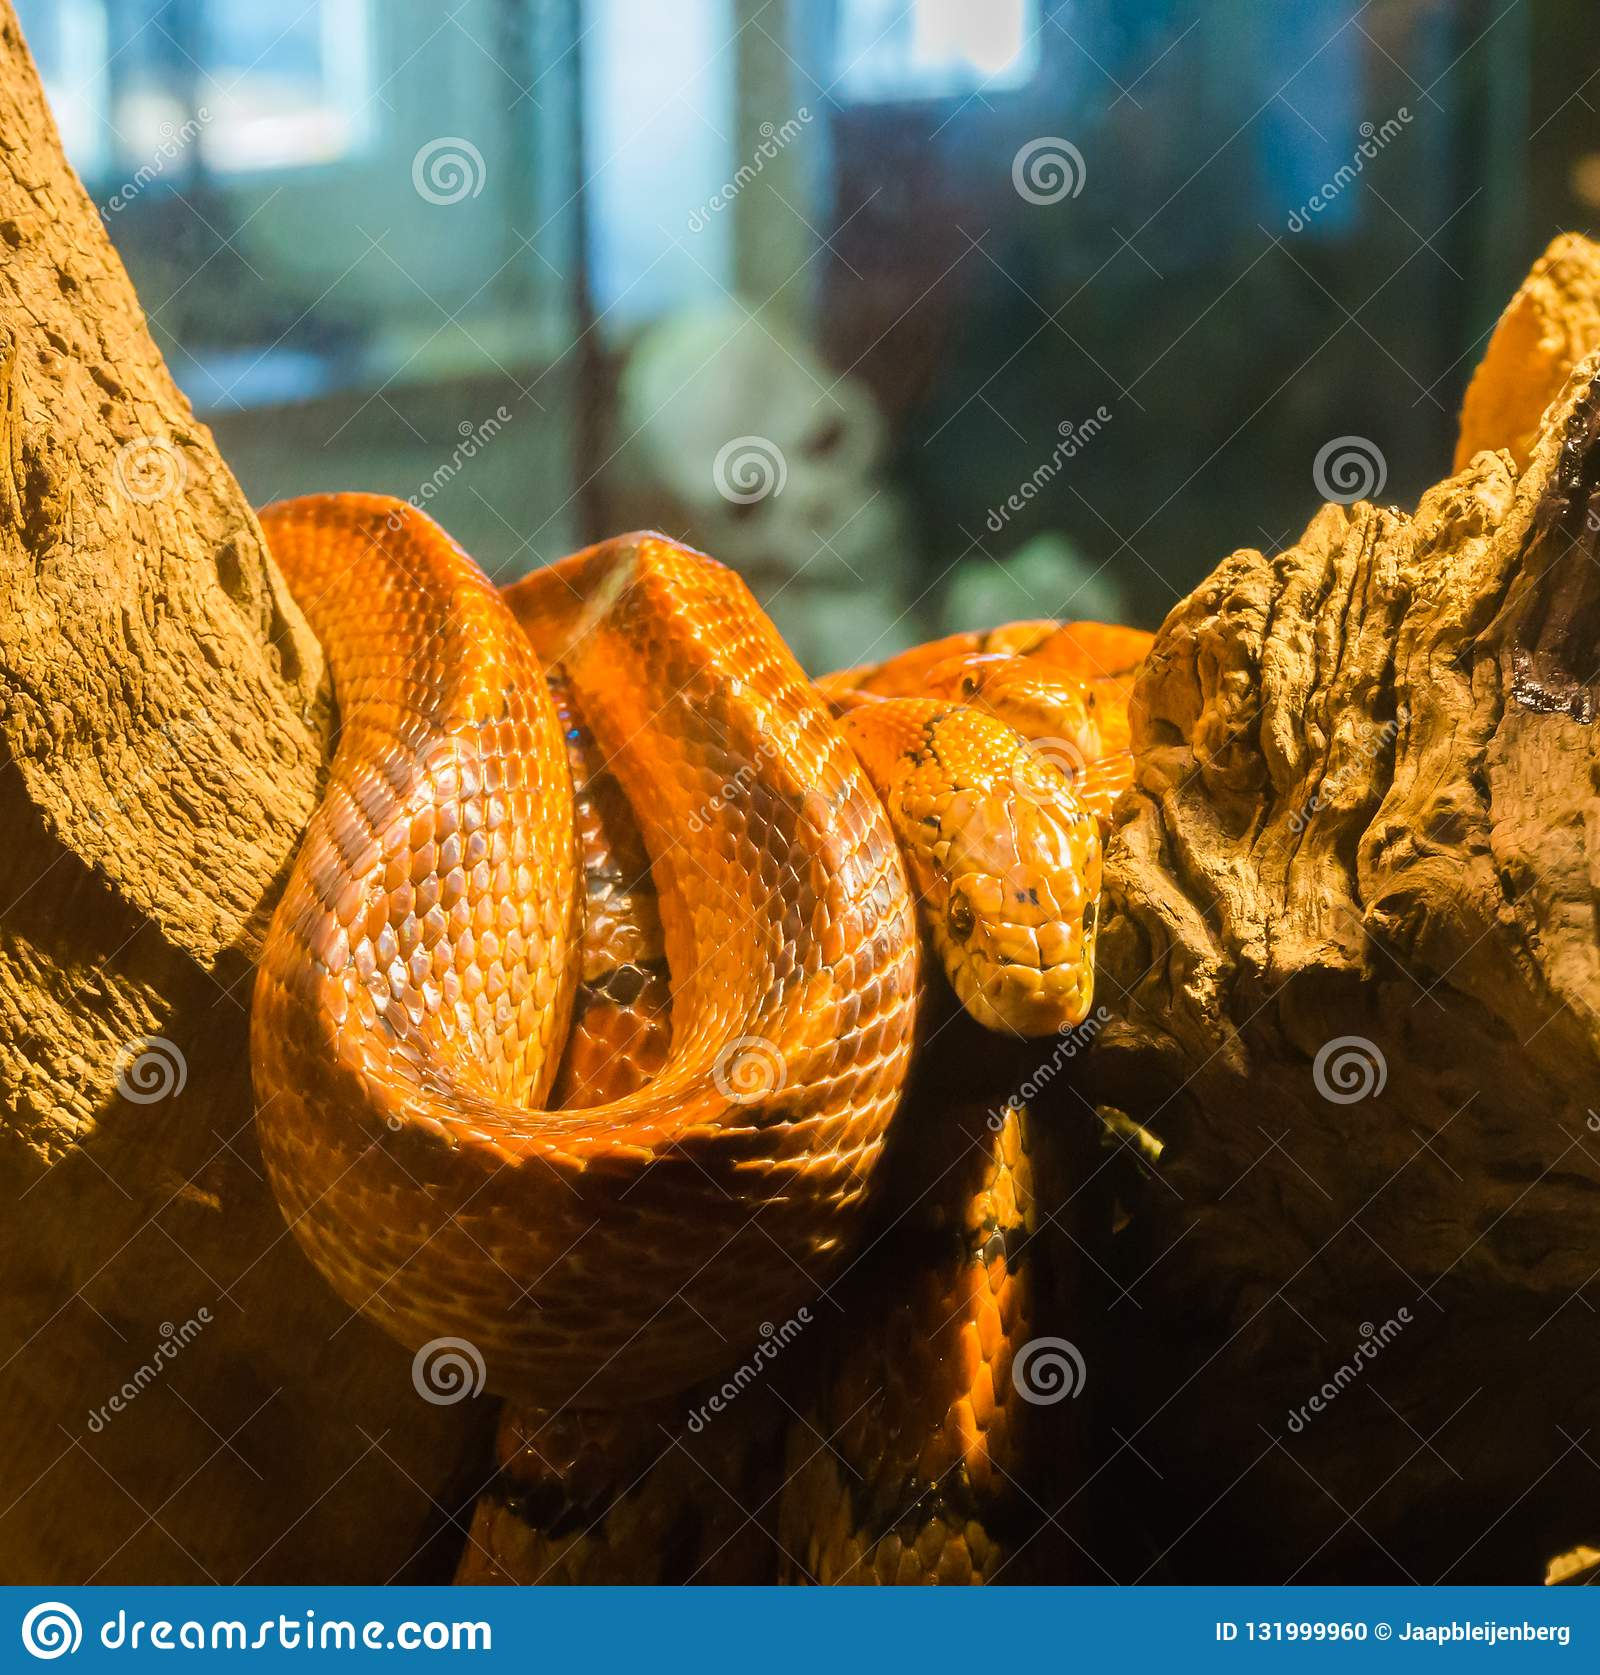 Red Orange Corn Rat Snake On A Branch In The Terrarium With A Creepy